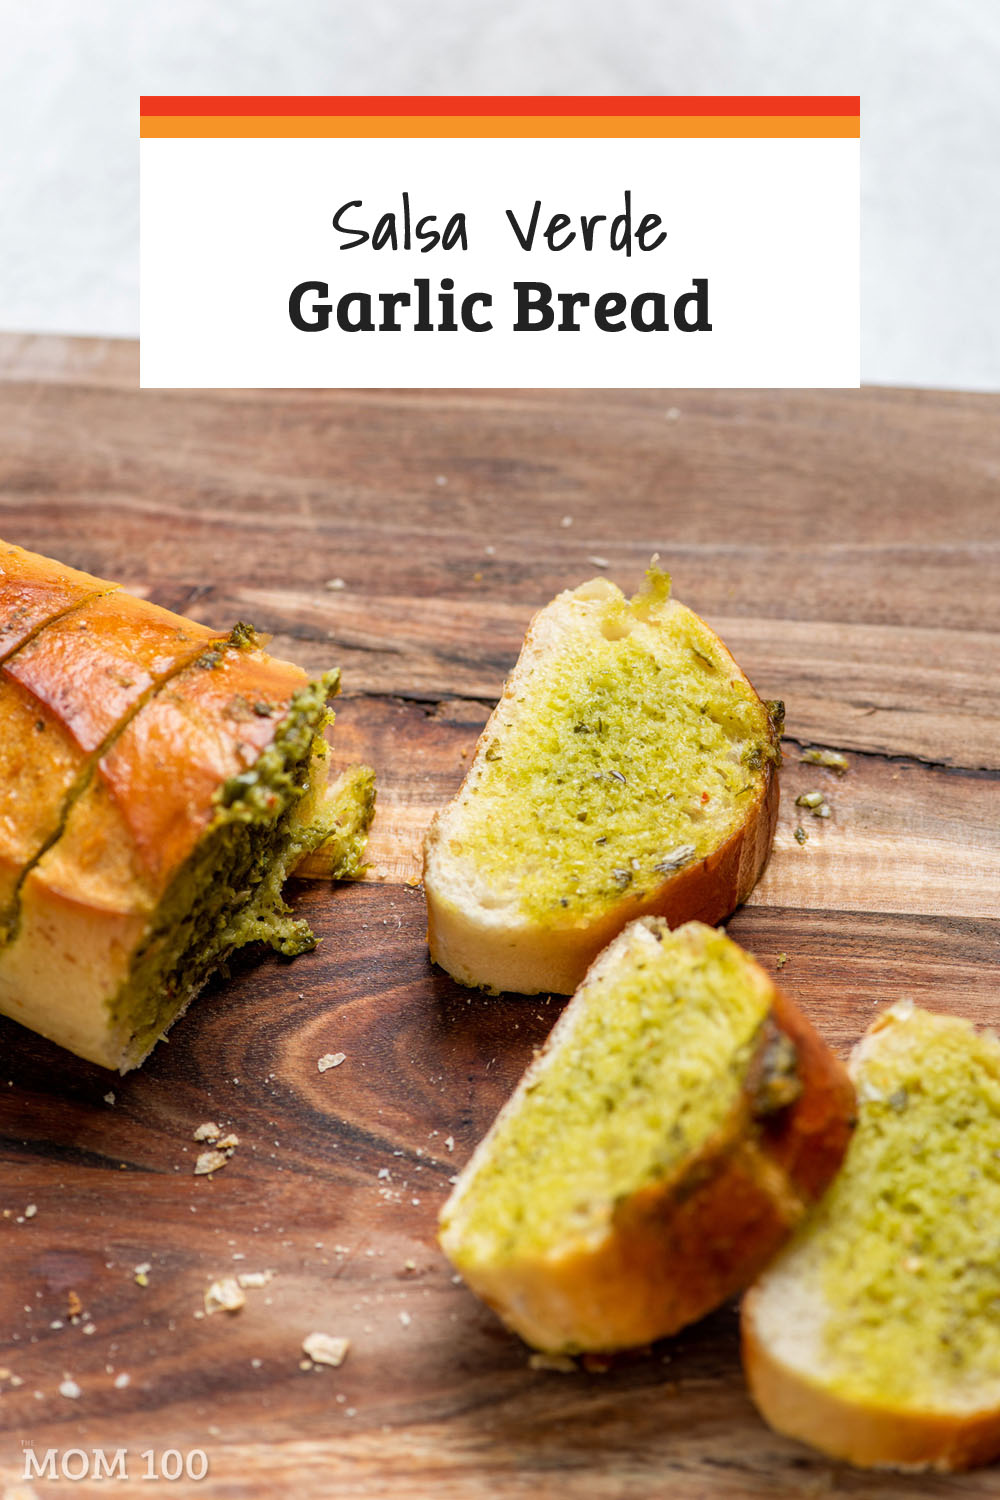 Salsa Verde Garlic Bread: Herby and scalliony salsa verde in sliced baguette - a delicious and cheerfully green take on garlic bread. #garlicbread #sidedish